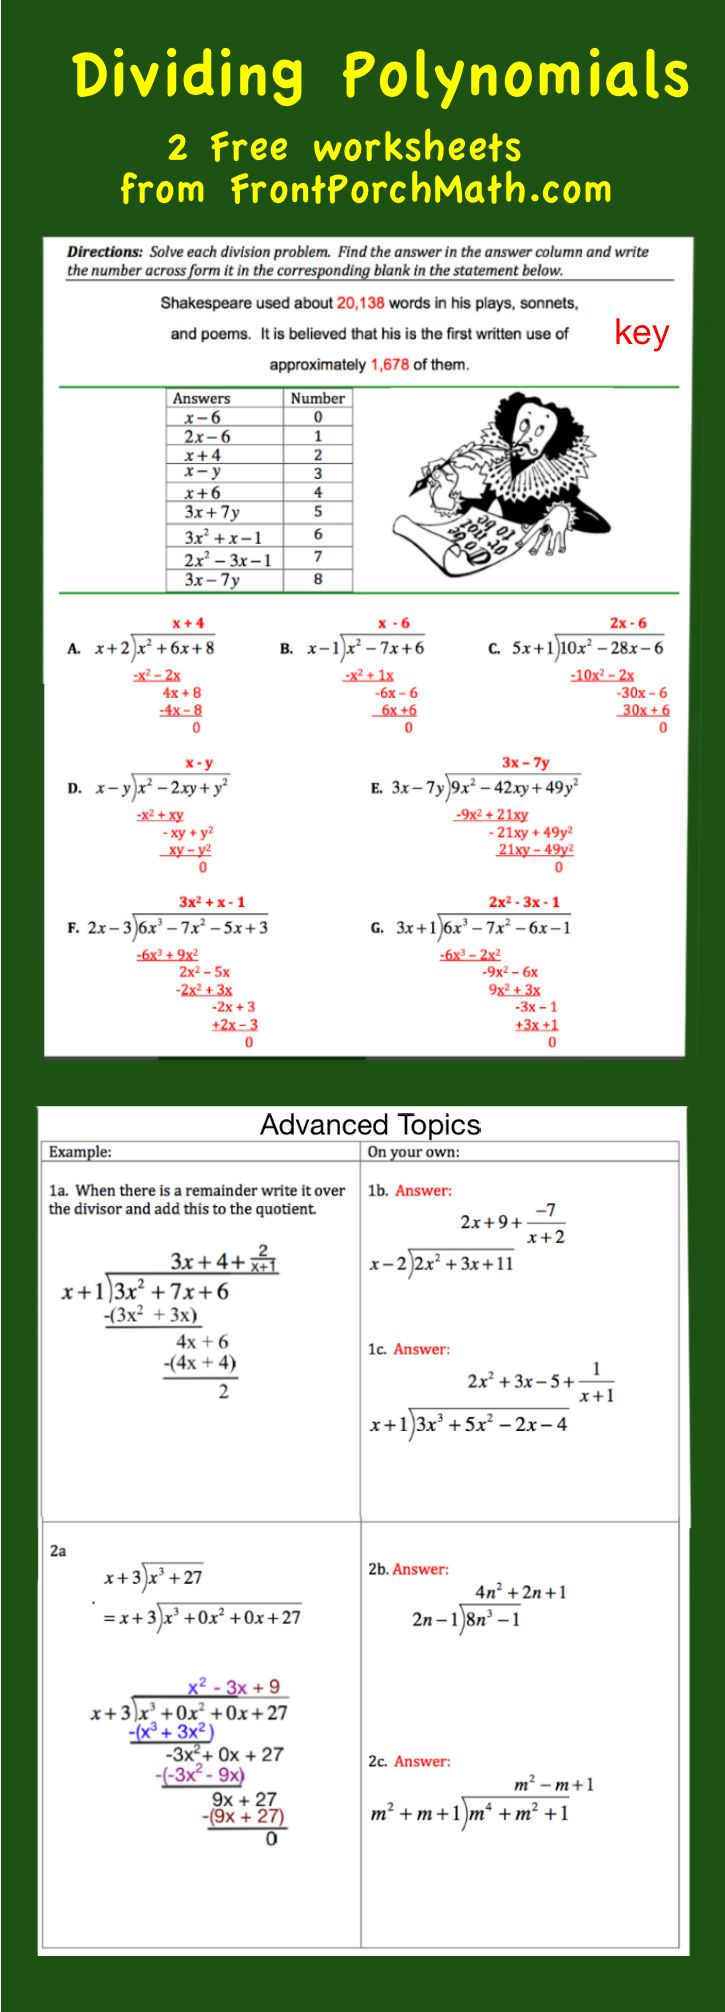 Free Worksheets On How To Divide Polynomials The Advanced Topics Worksheet  Covers Remainders And How